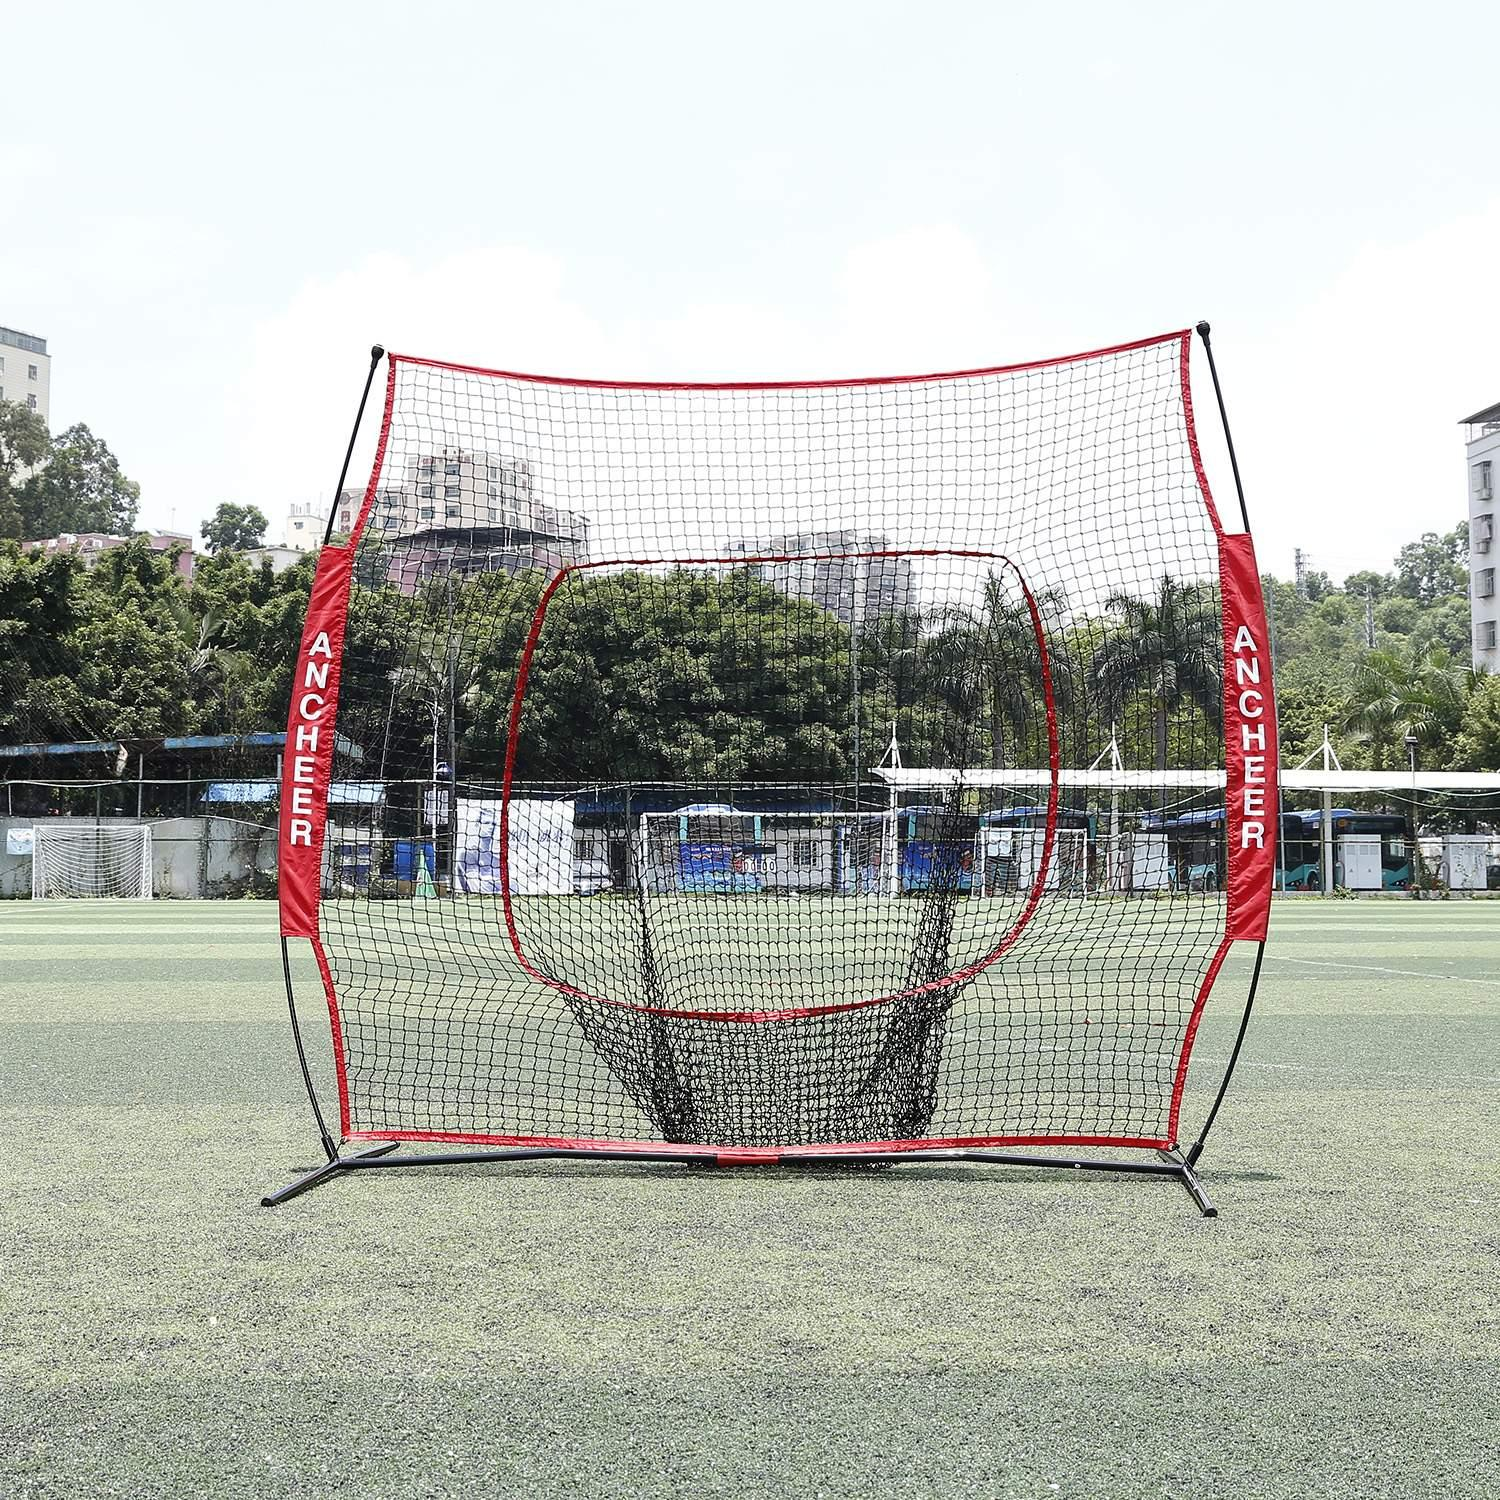 Ancheer 7 x 7 Baseball & Softball Practice Net for Batting Training with Bow Frame Bag